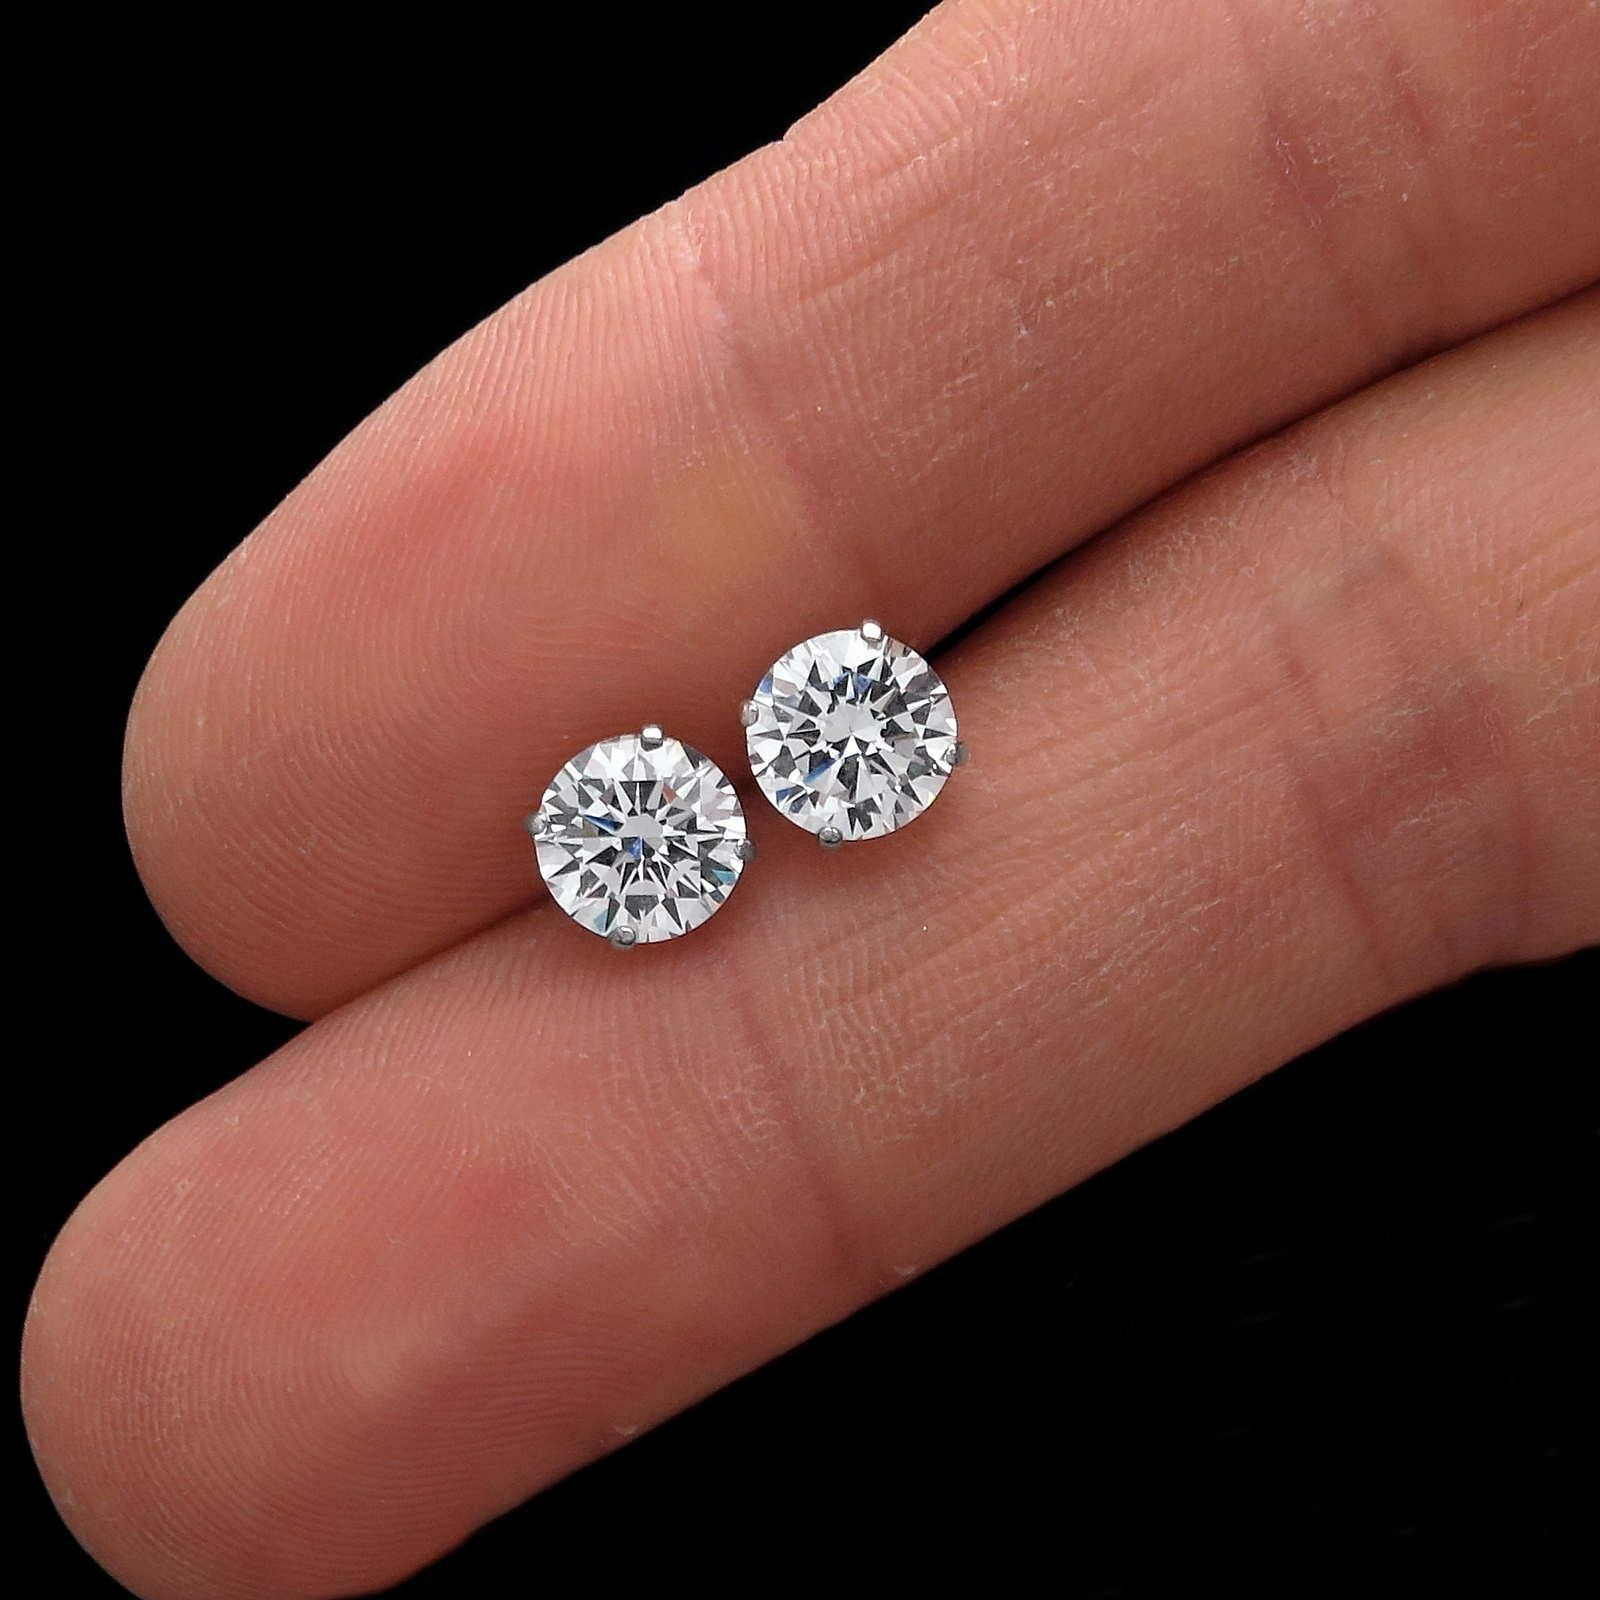 $39.99 - 2Ct Brilliant Created Diamond Earrings 14K Real White Gold Round Solitaire Studs